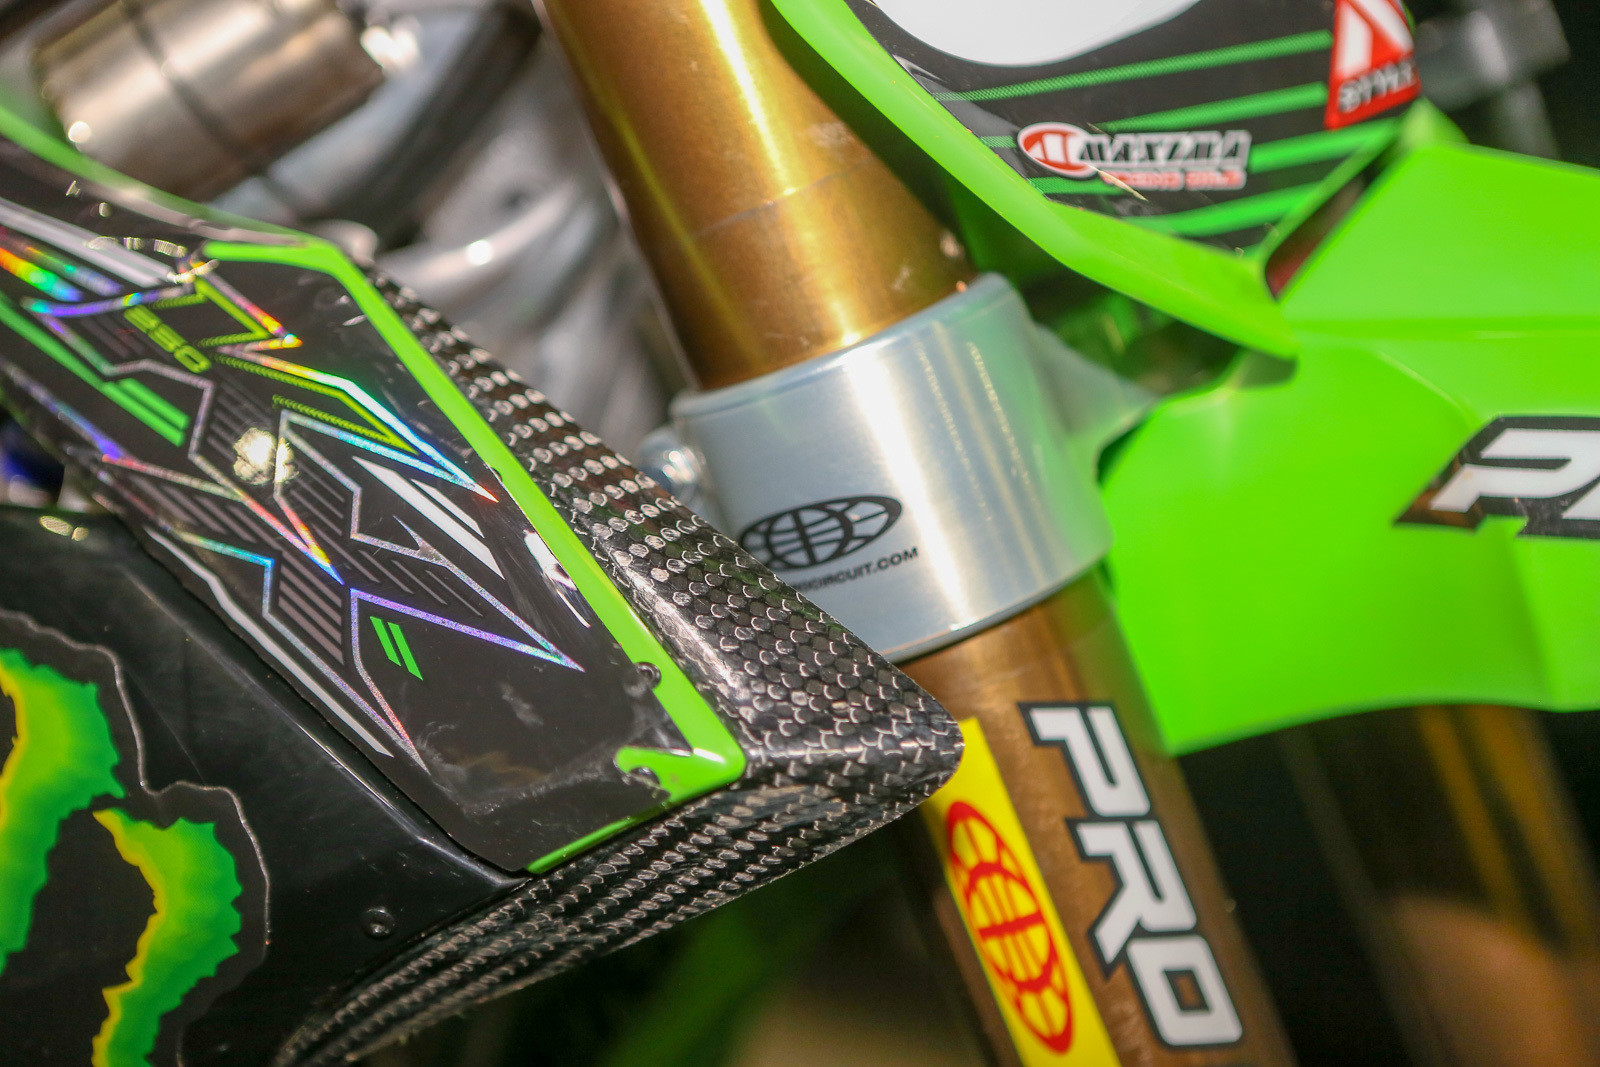 Remember last summer when Austin Forkner ripped his shrouds off a couple times? So does the Monster Energy Pro Circuit Kawasaki staff, so they added these extensions to the shroud to prevent it from happening again.